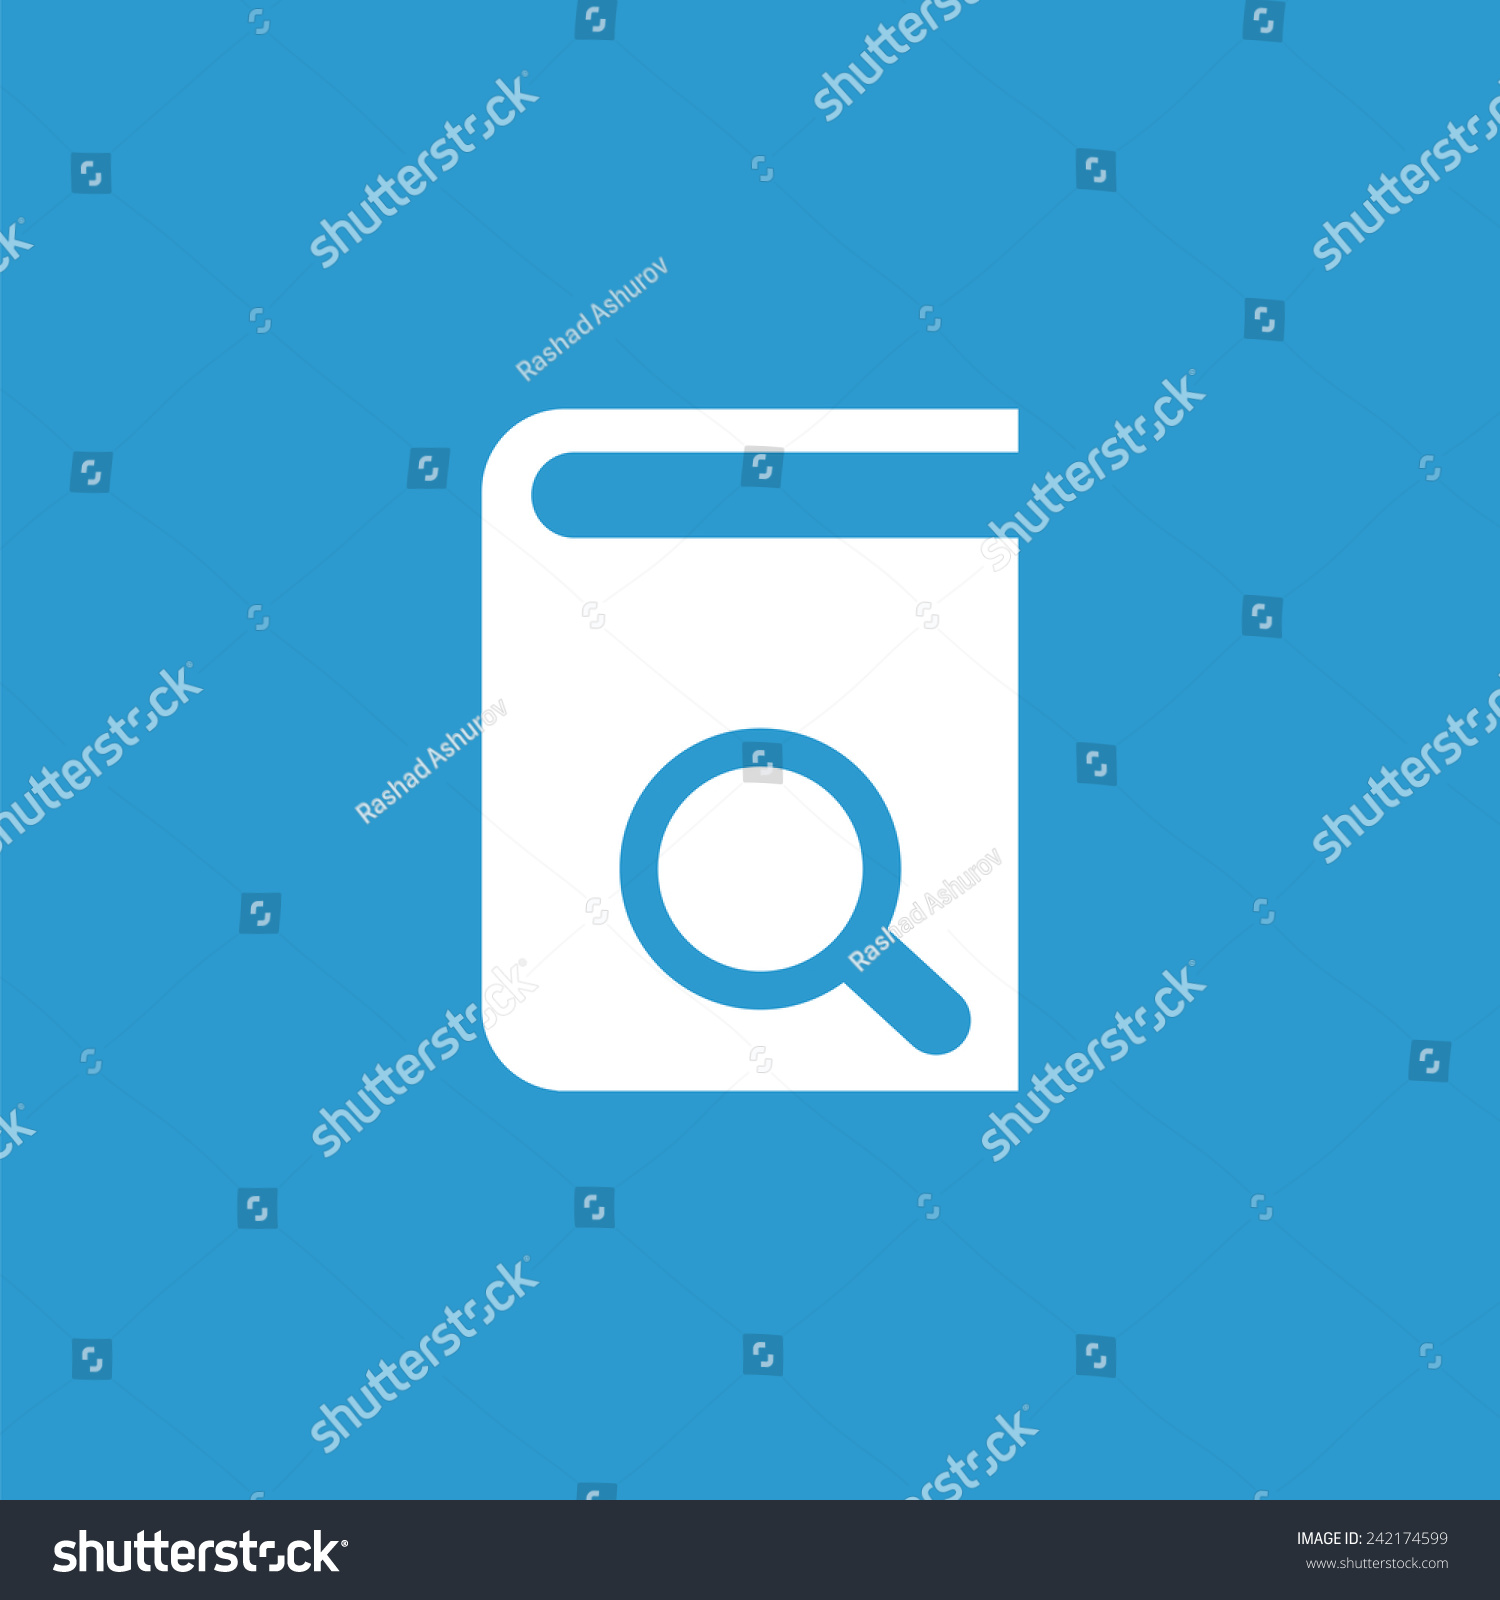 Book Search Icon Isolated White On Stock Vector 242174599 Shutterstock